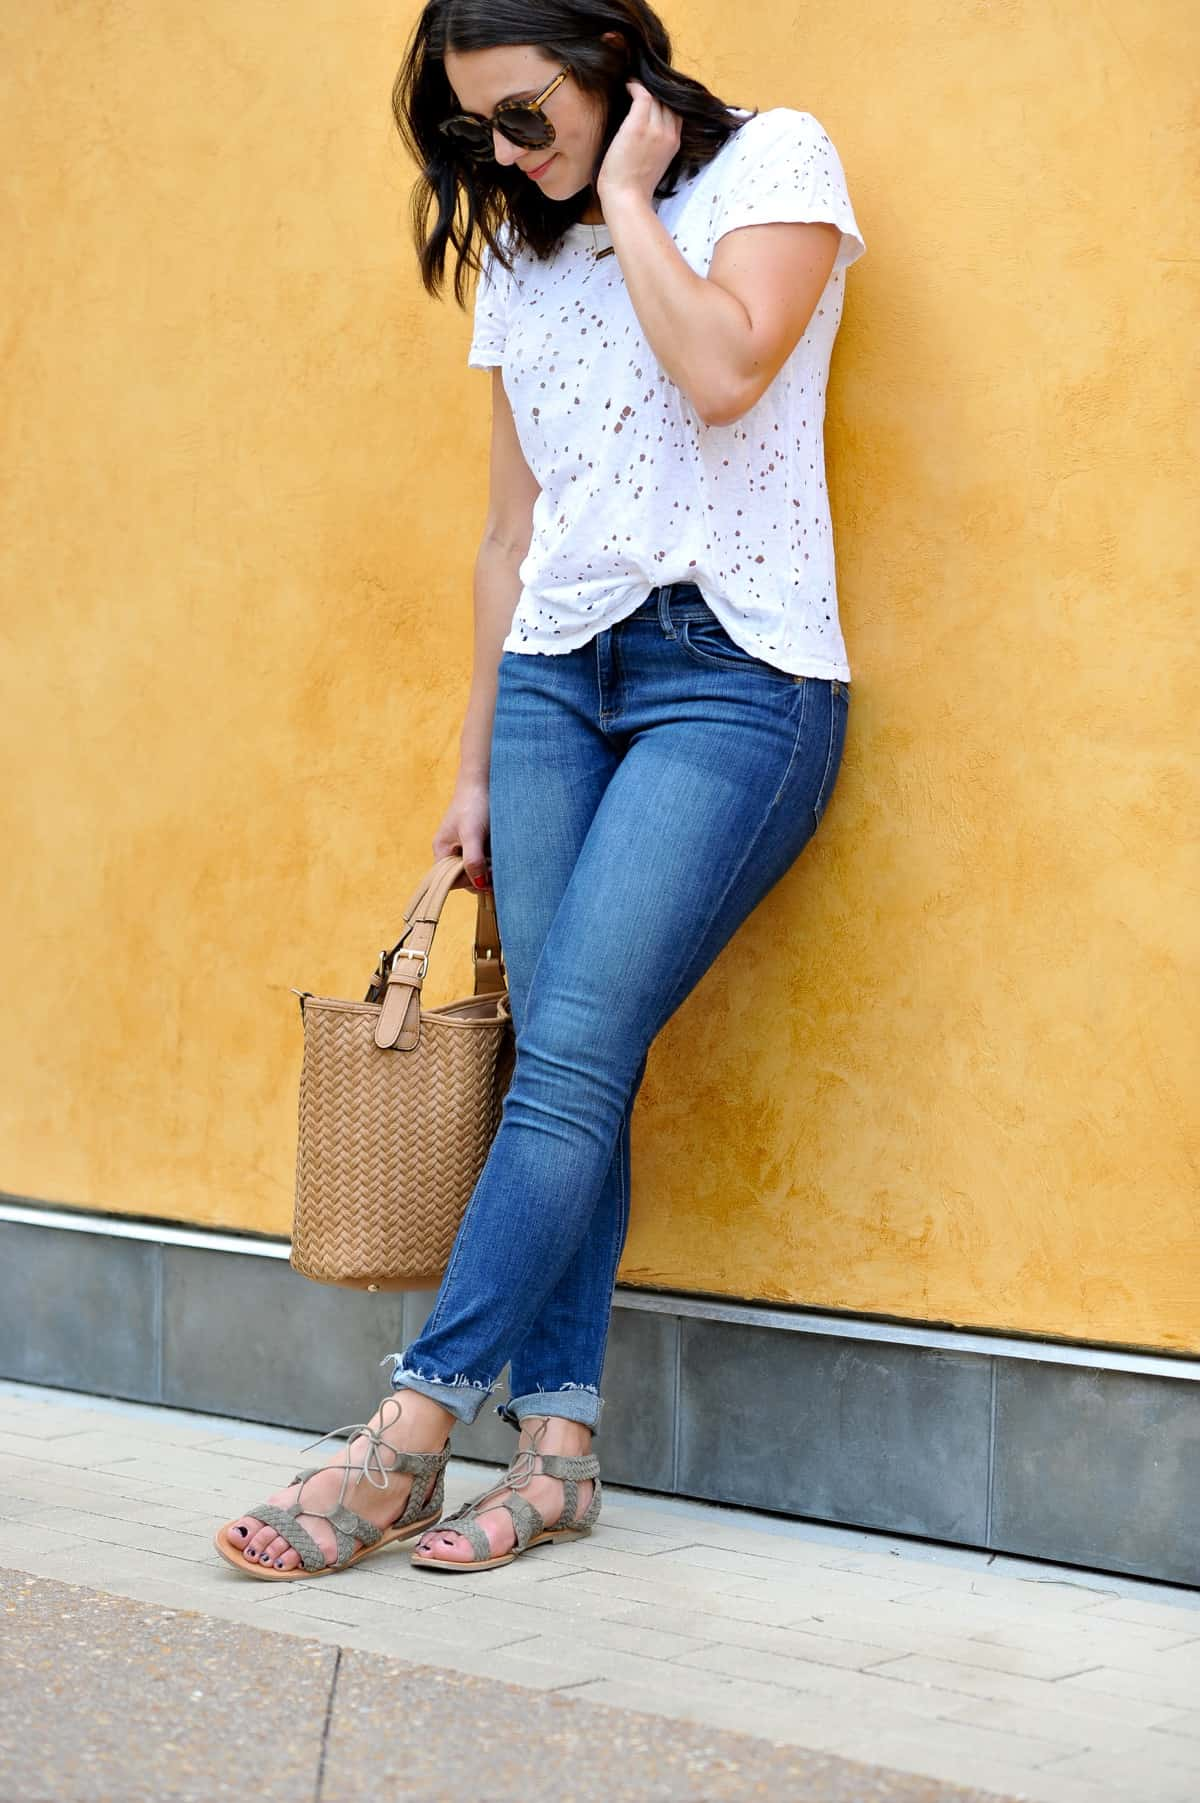 Casual summer outfit ideas - My Style Vita @mystylevita - 17